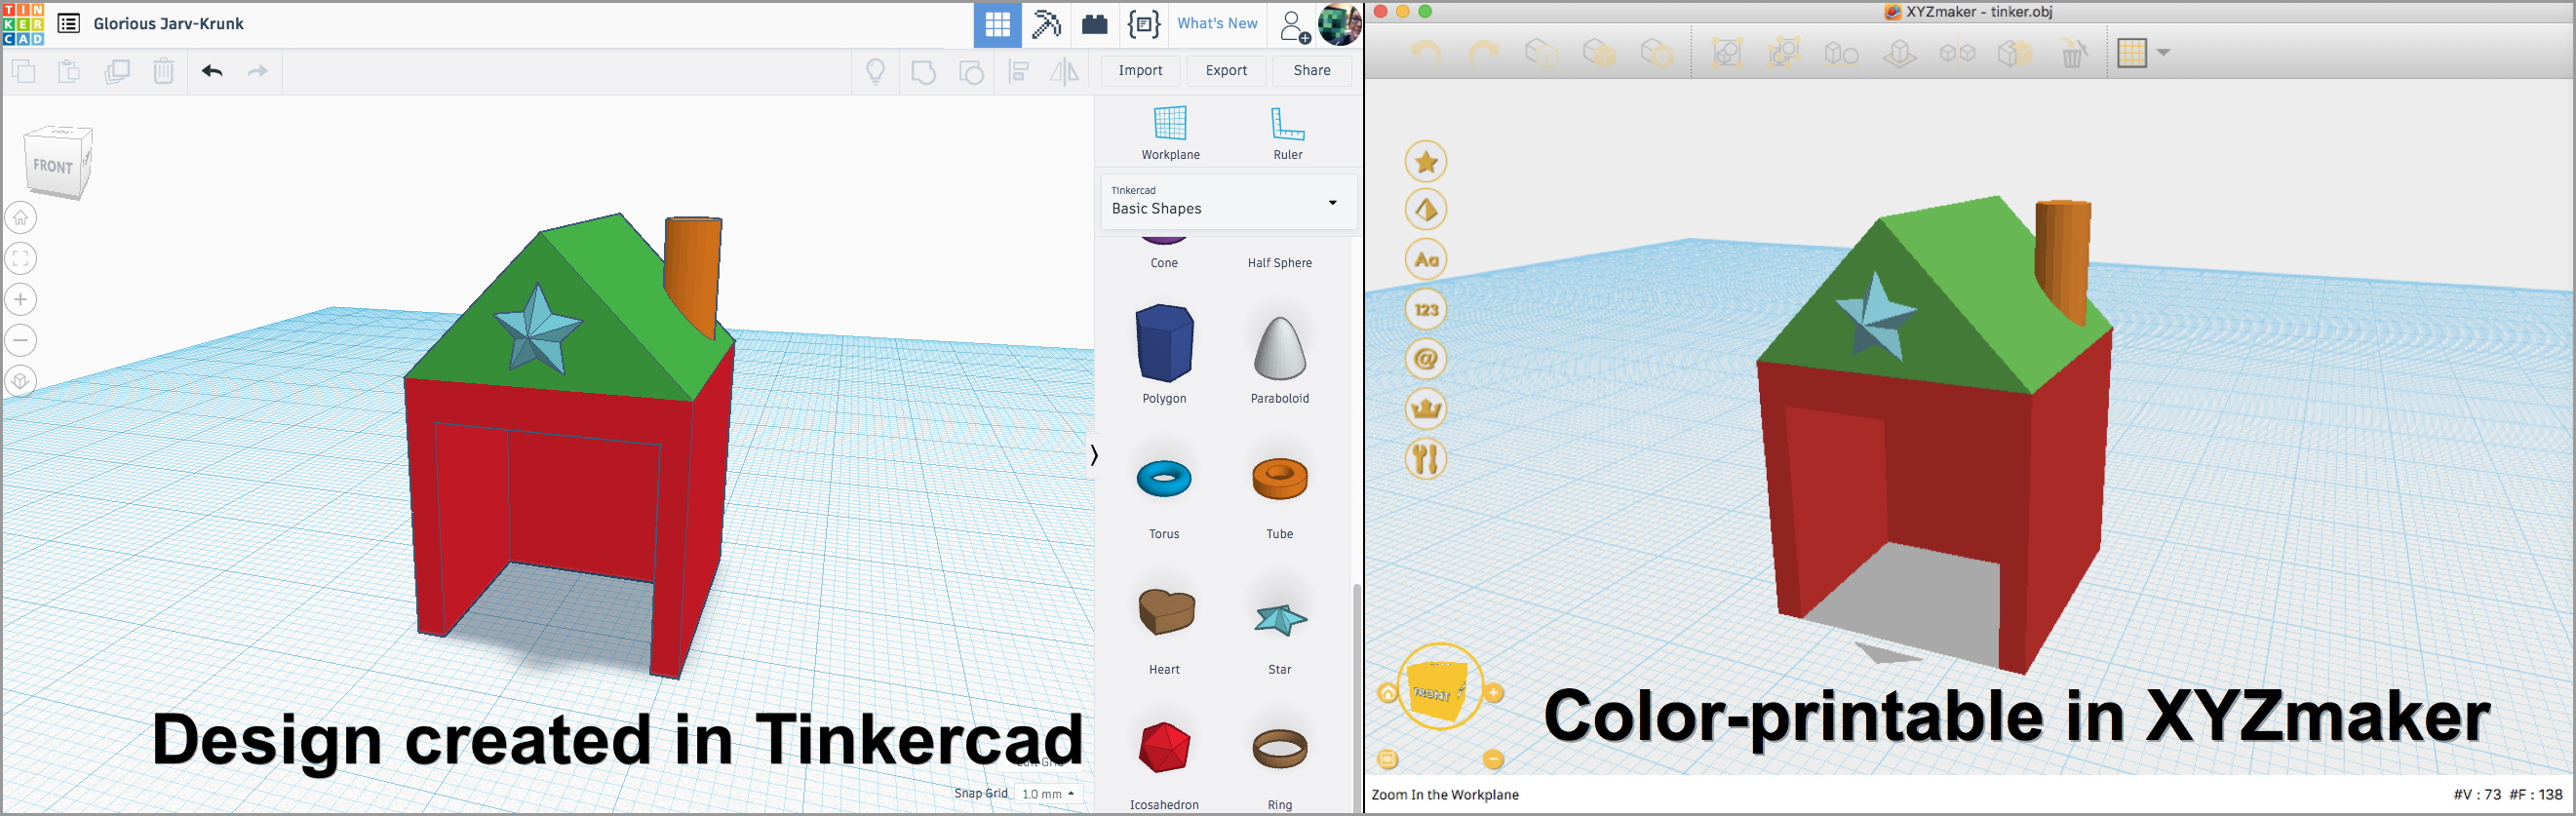 Multicolor 3D Printing, from Tinkercad to XYZ - mathgrrl